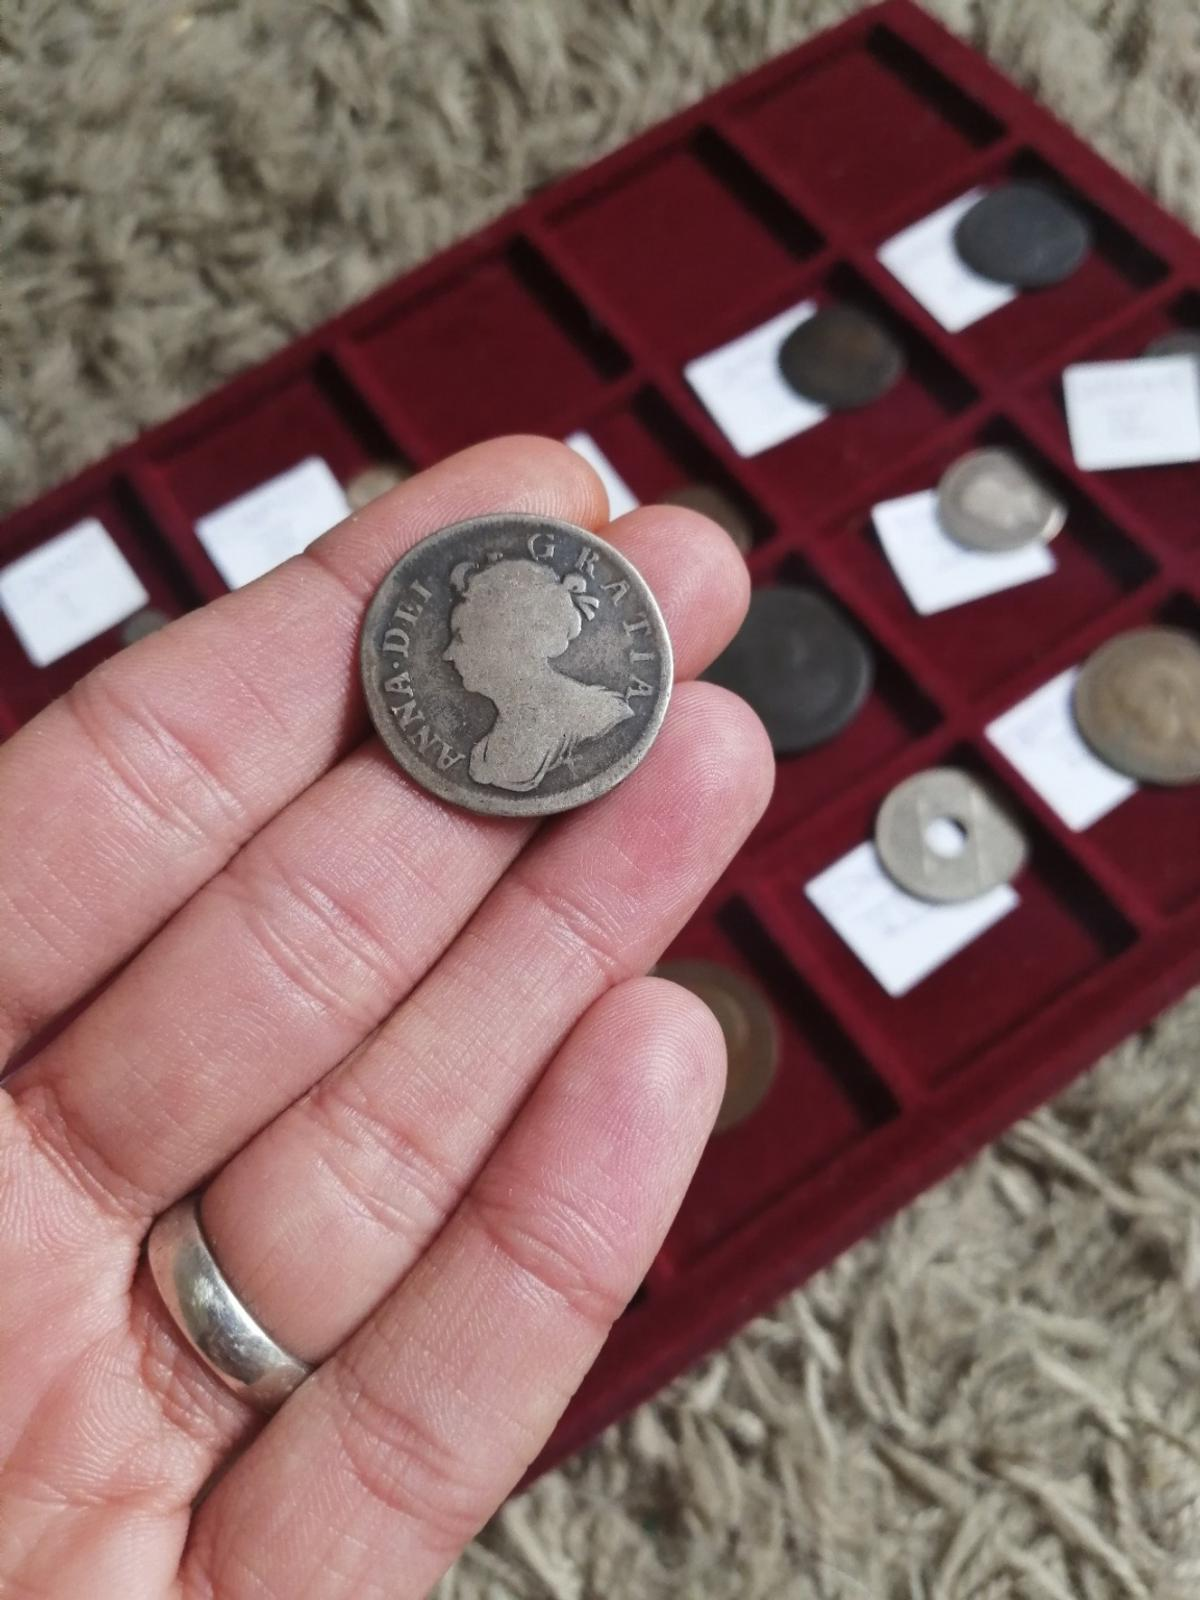 RARE British coins  900 years old in B31 Birmingham for